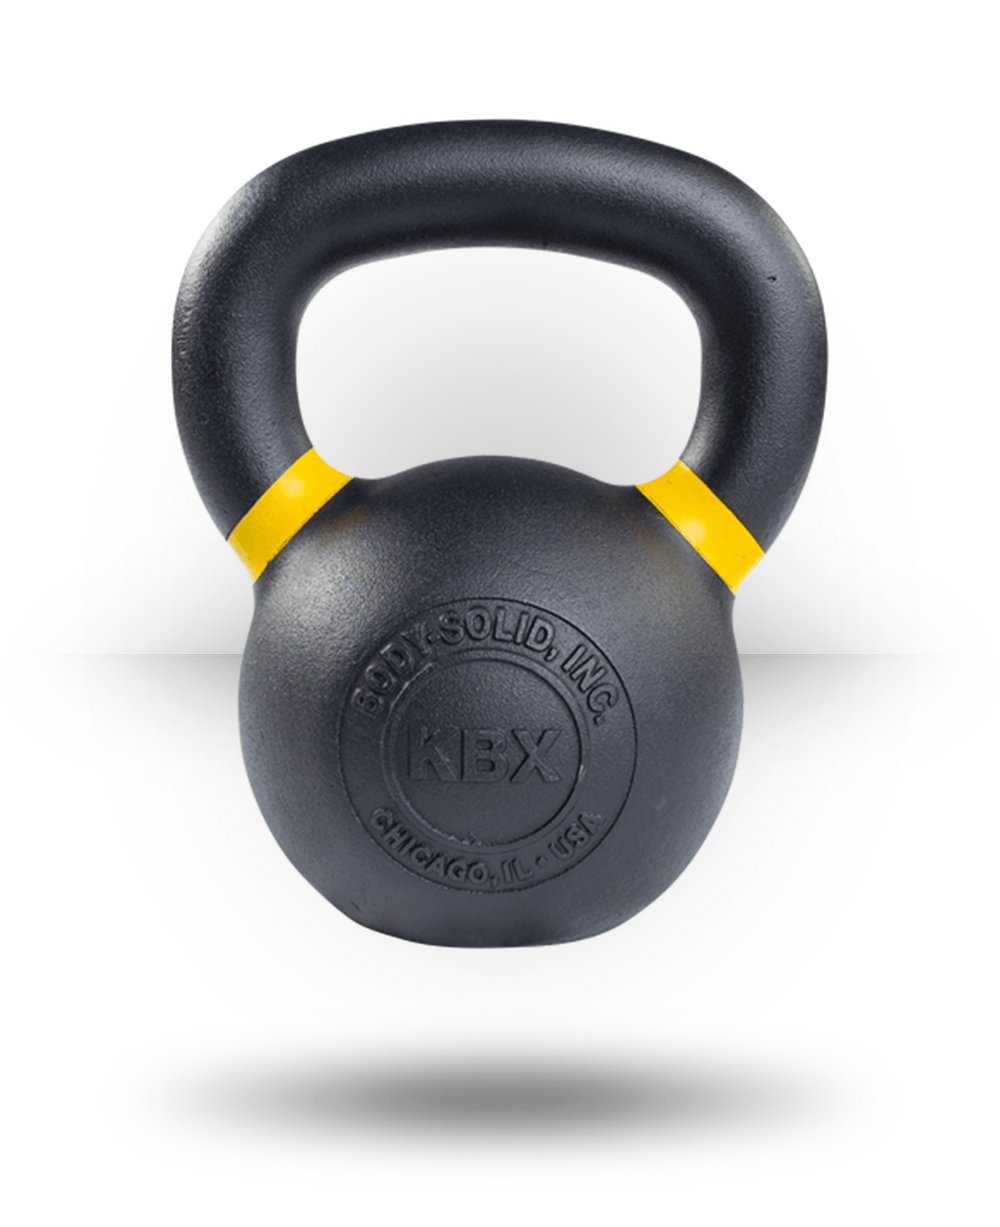 Body-Solid Premium Training Kettlebell 16 kg